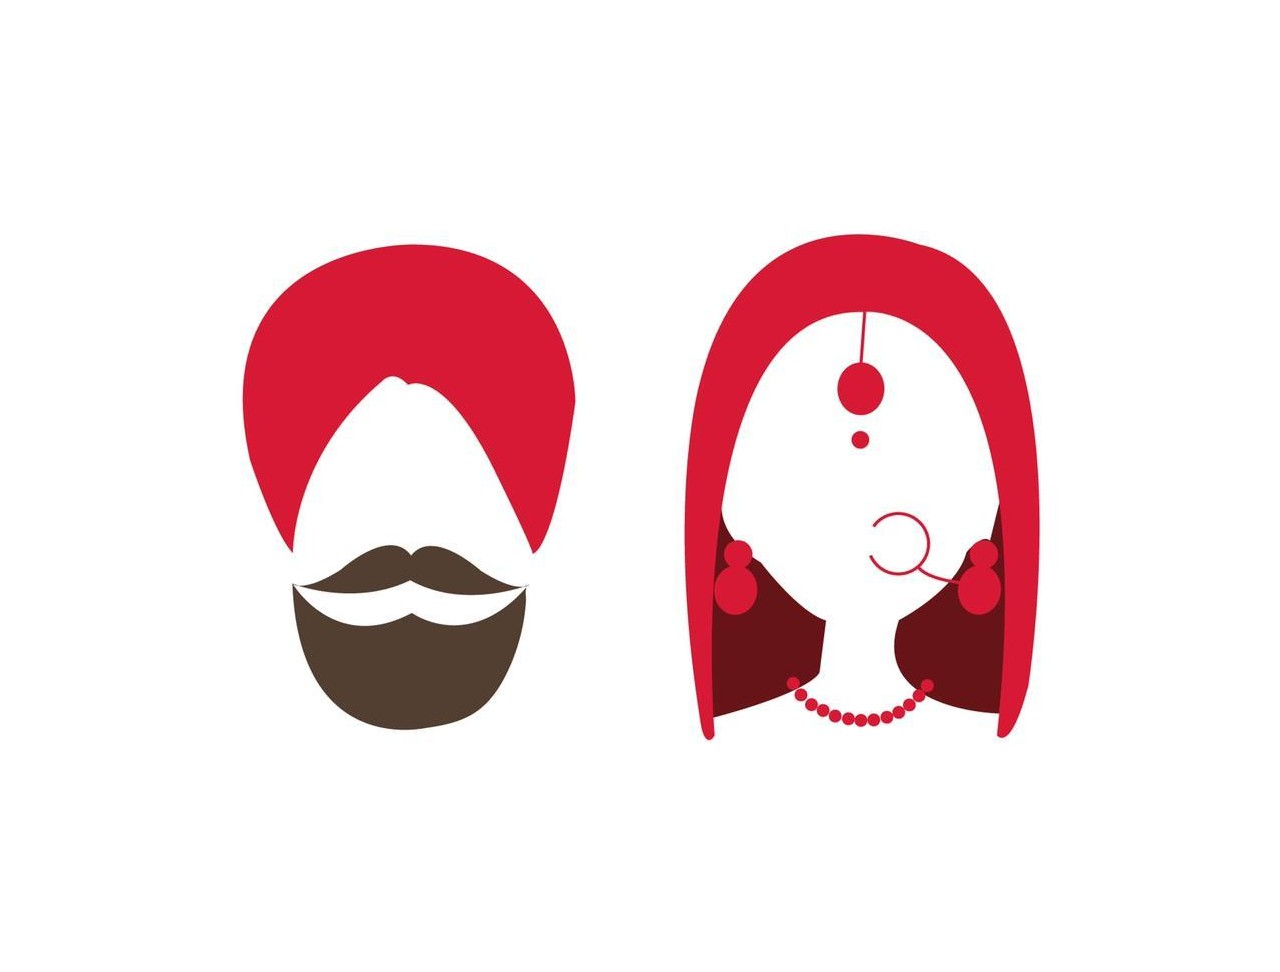 Milni clipart jpg freeuse download Neha & Navdeep — Minted jpg freeuse download